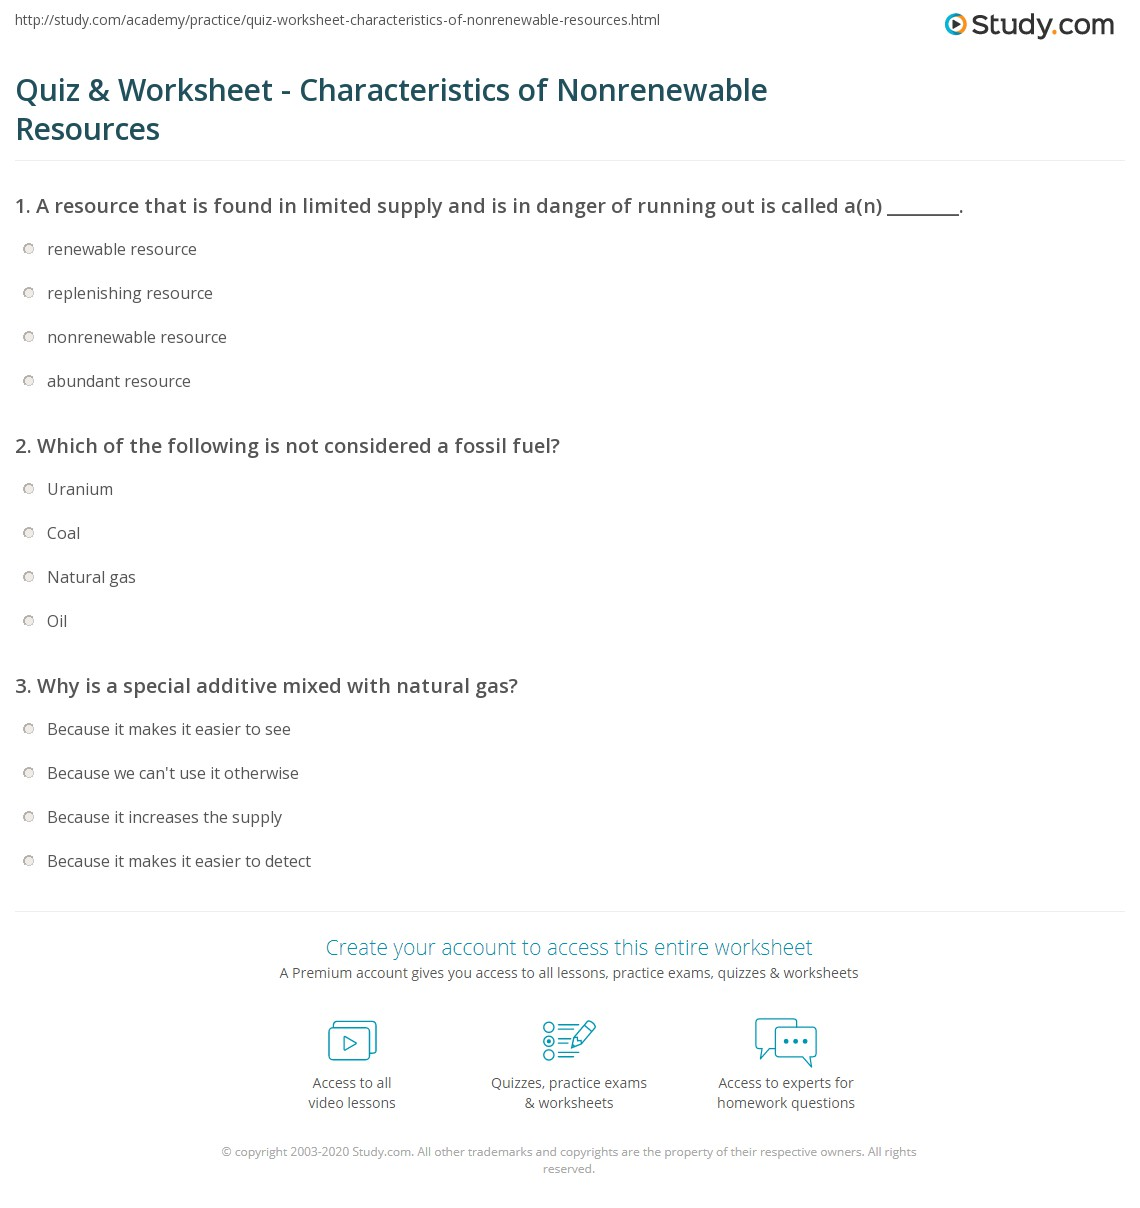 quiz & worksheet - characteristics of nonrenewable resources | study